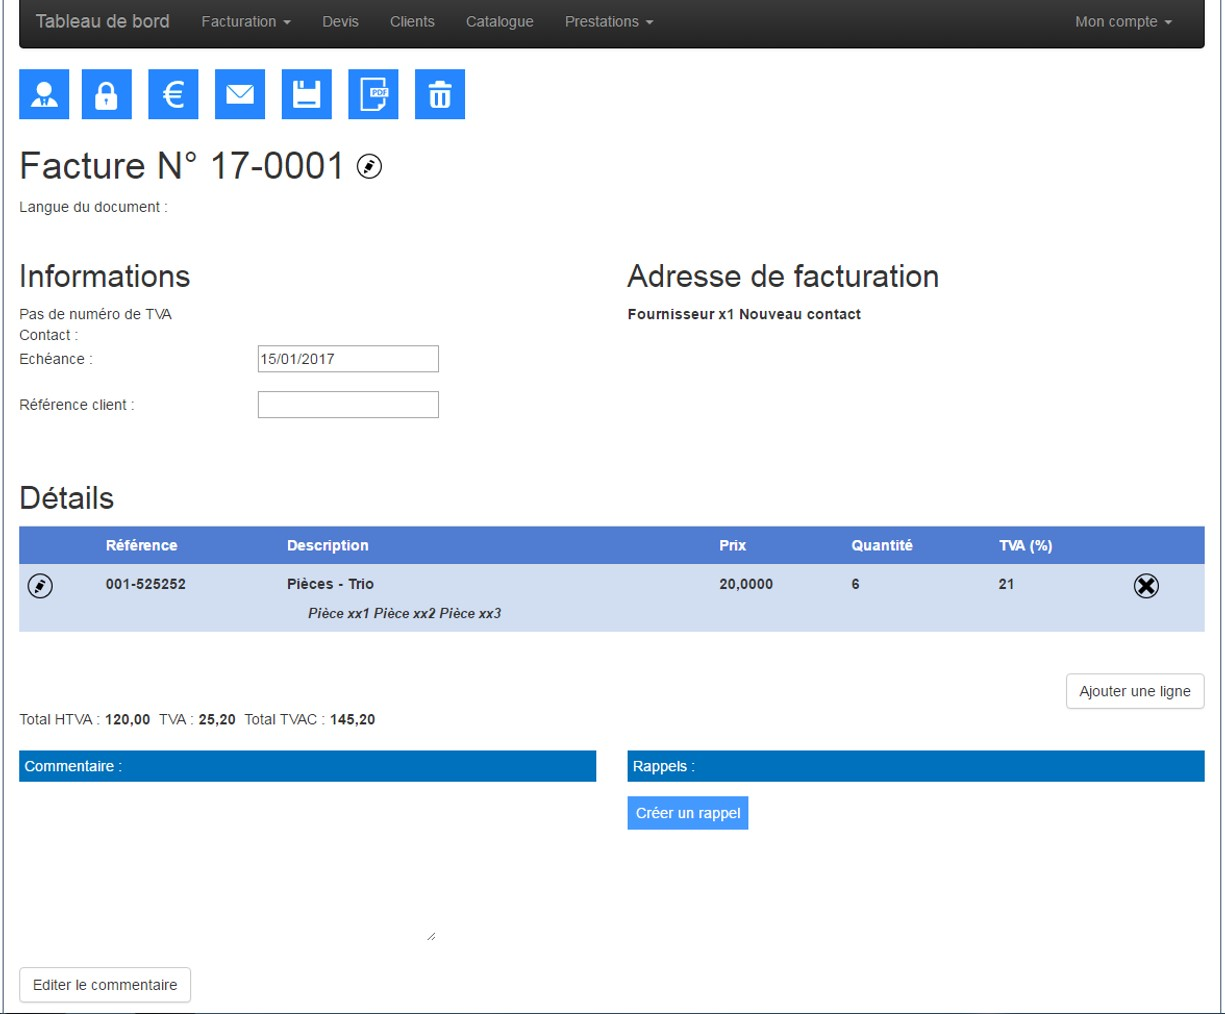 facturation facile logiciel de facturation en ligne simple rapide